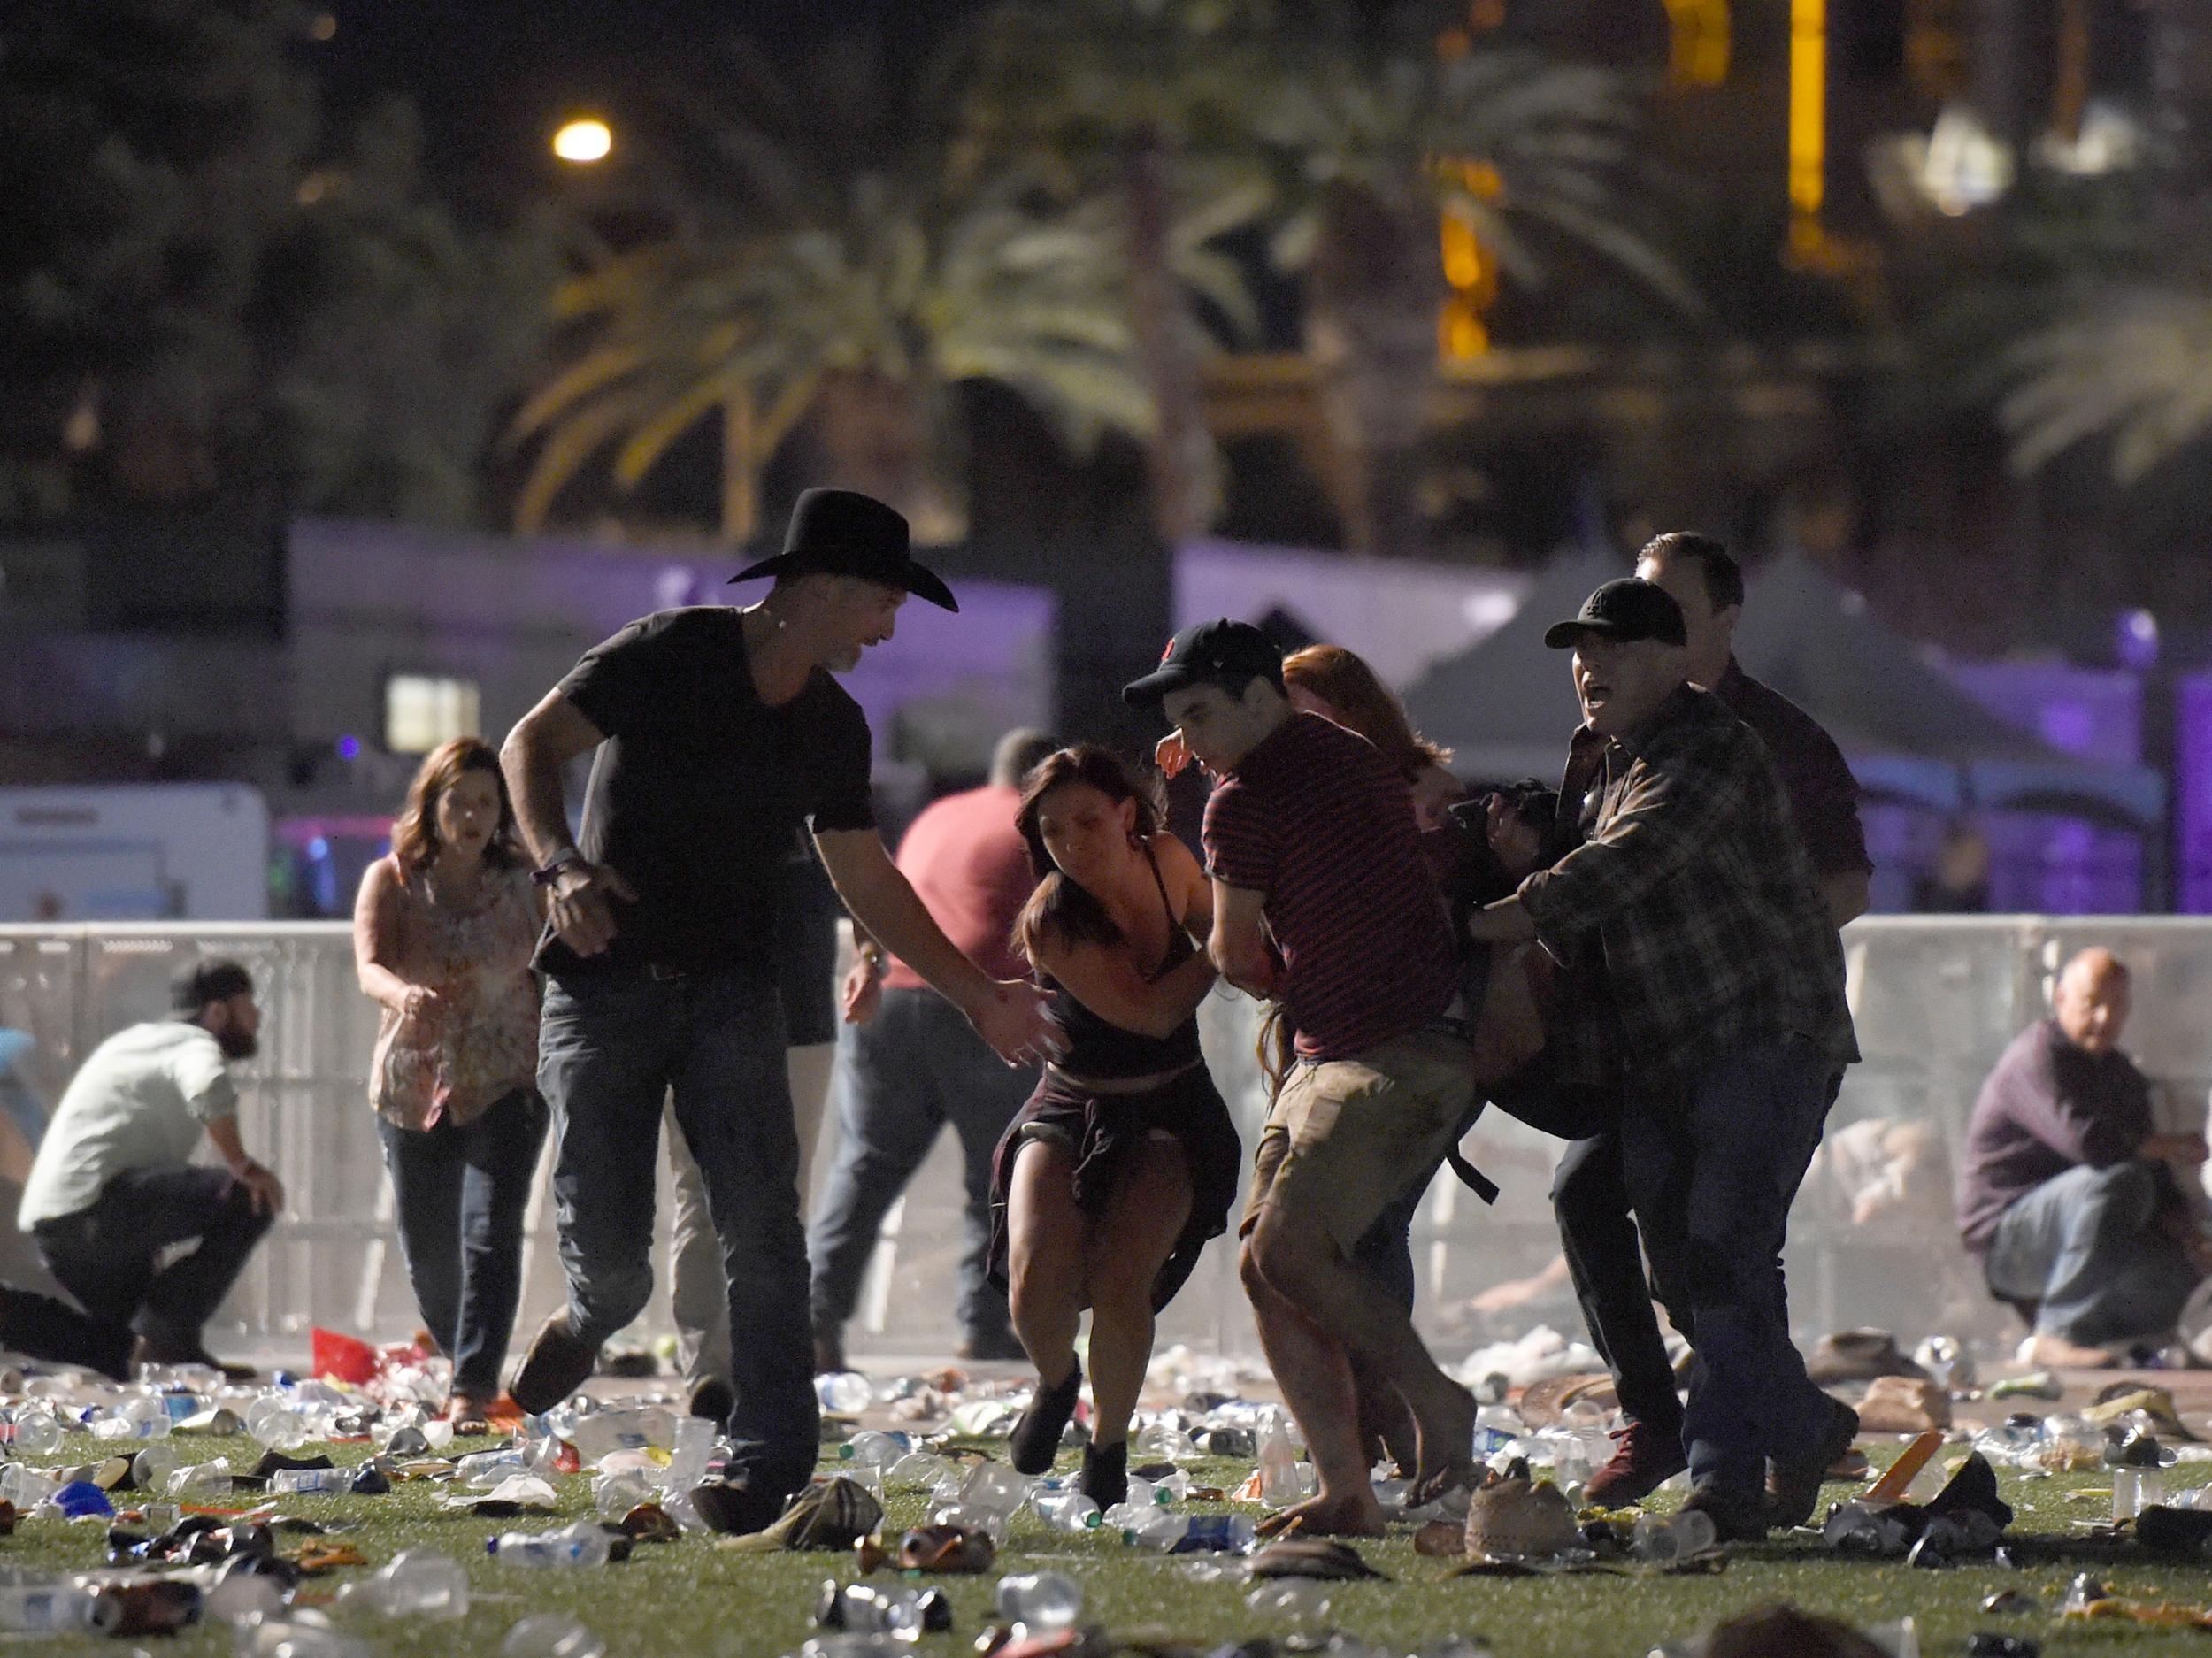 Las Vegas shooting: New CCTV video shows people running for